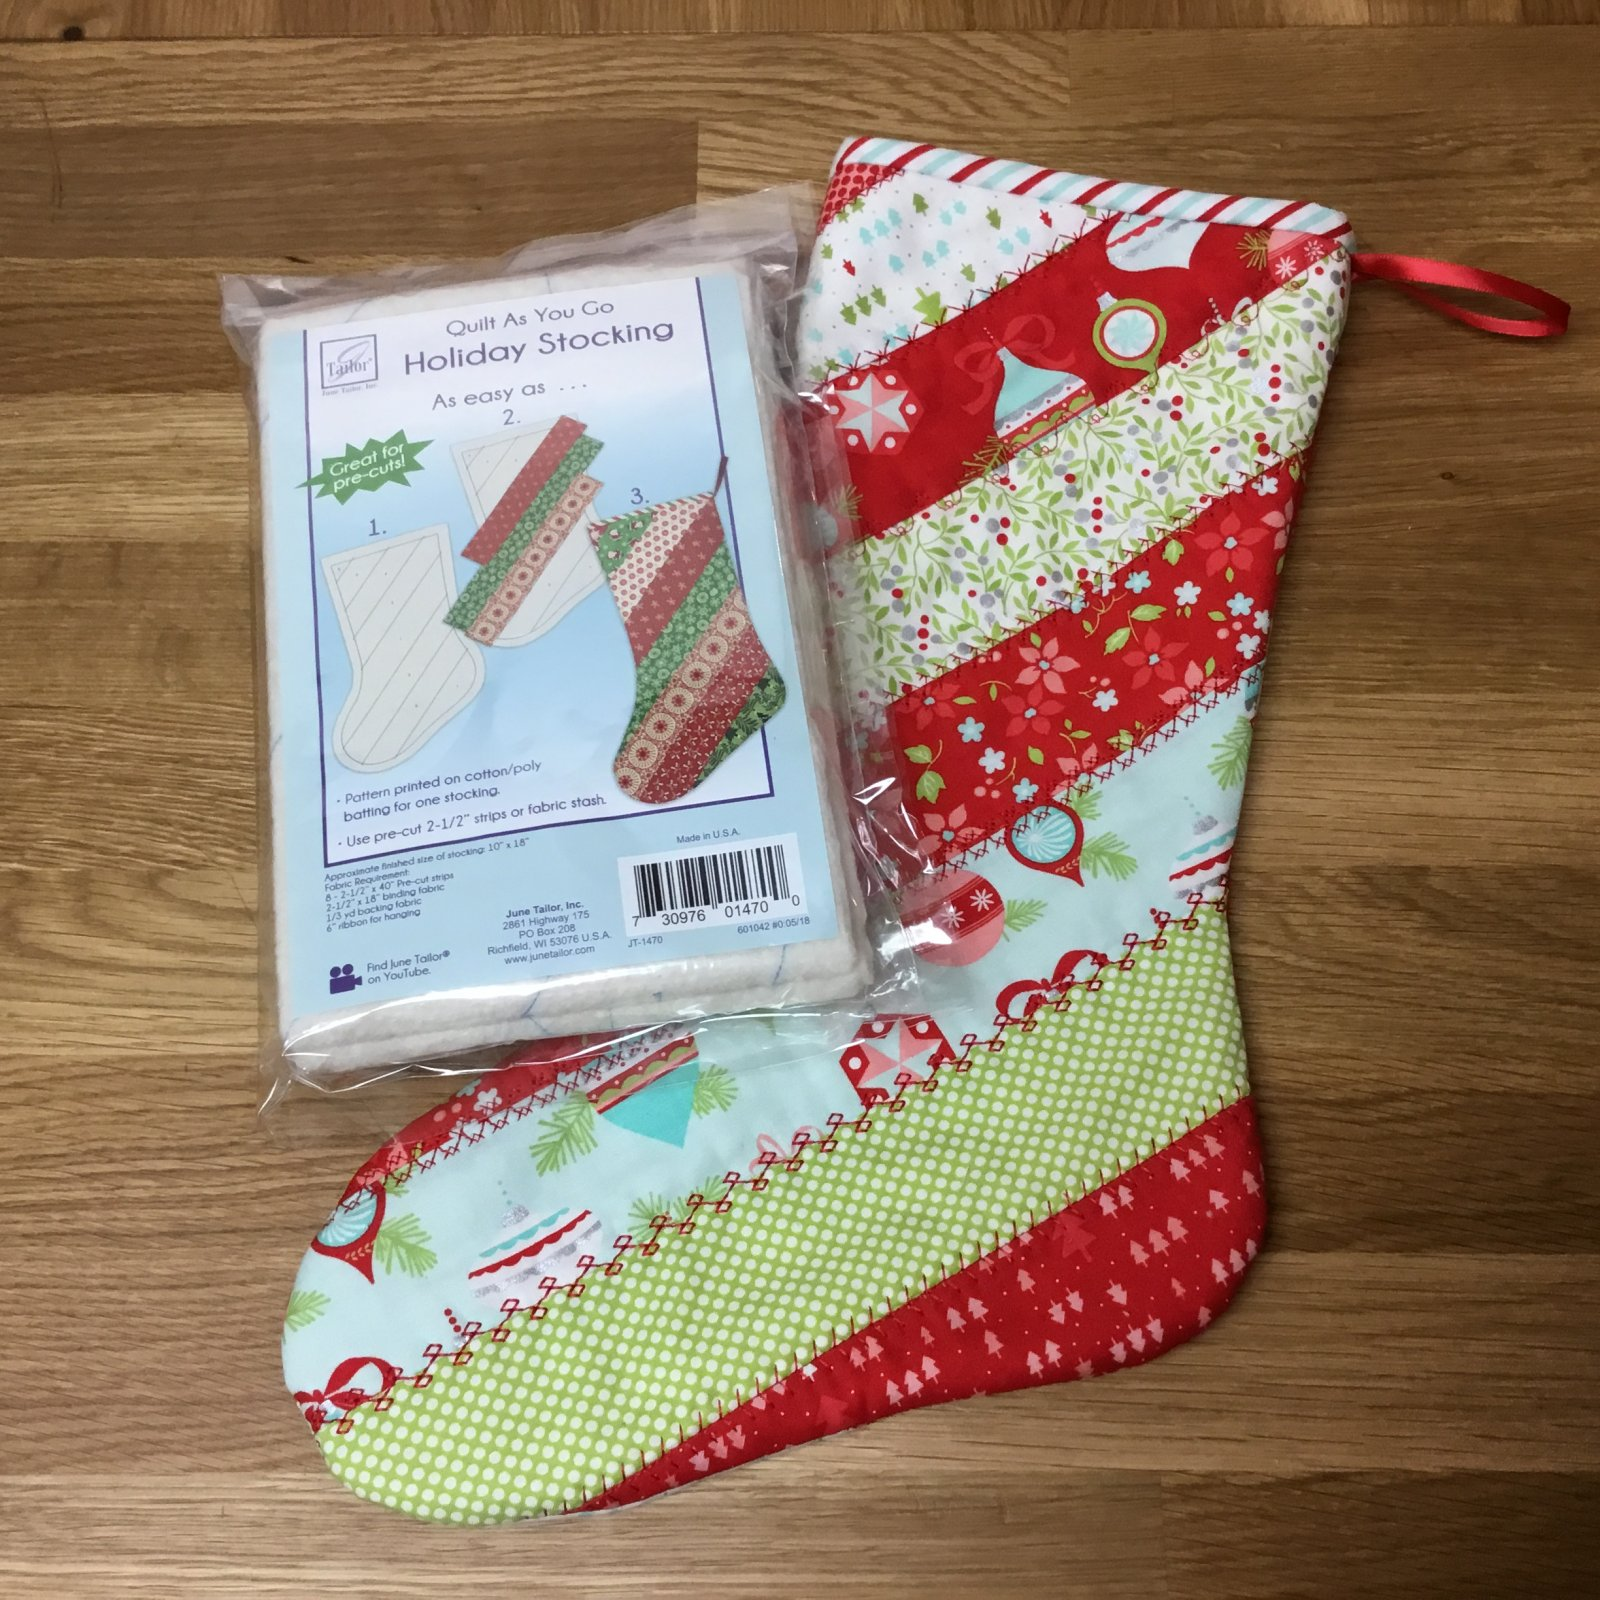 Christmas Stocking Quilt As You Go Kit